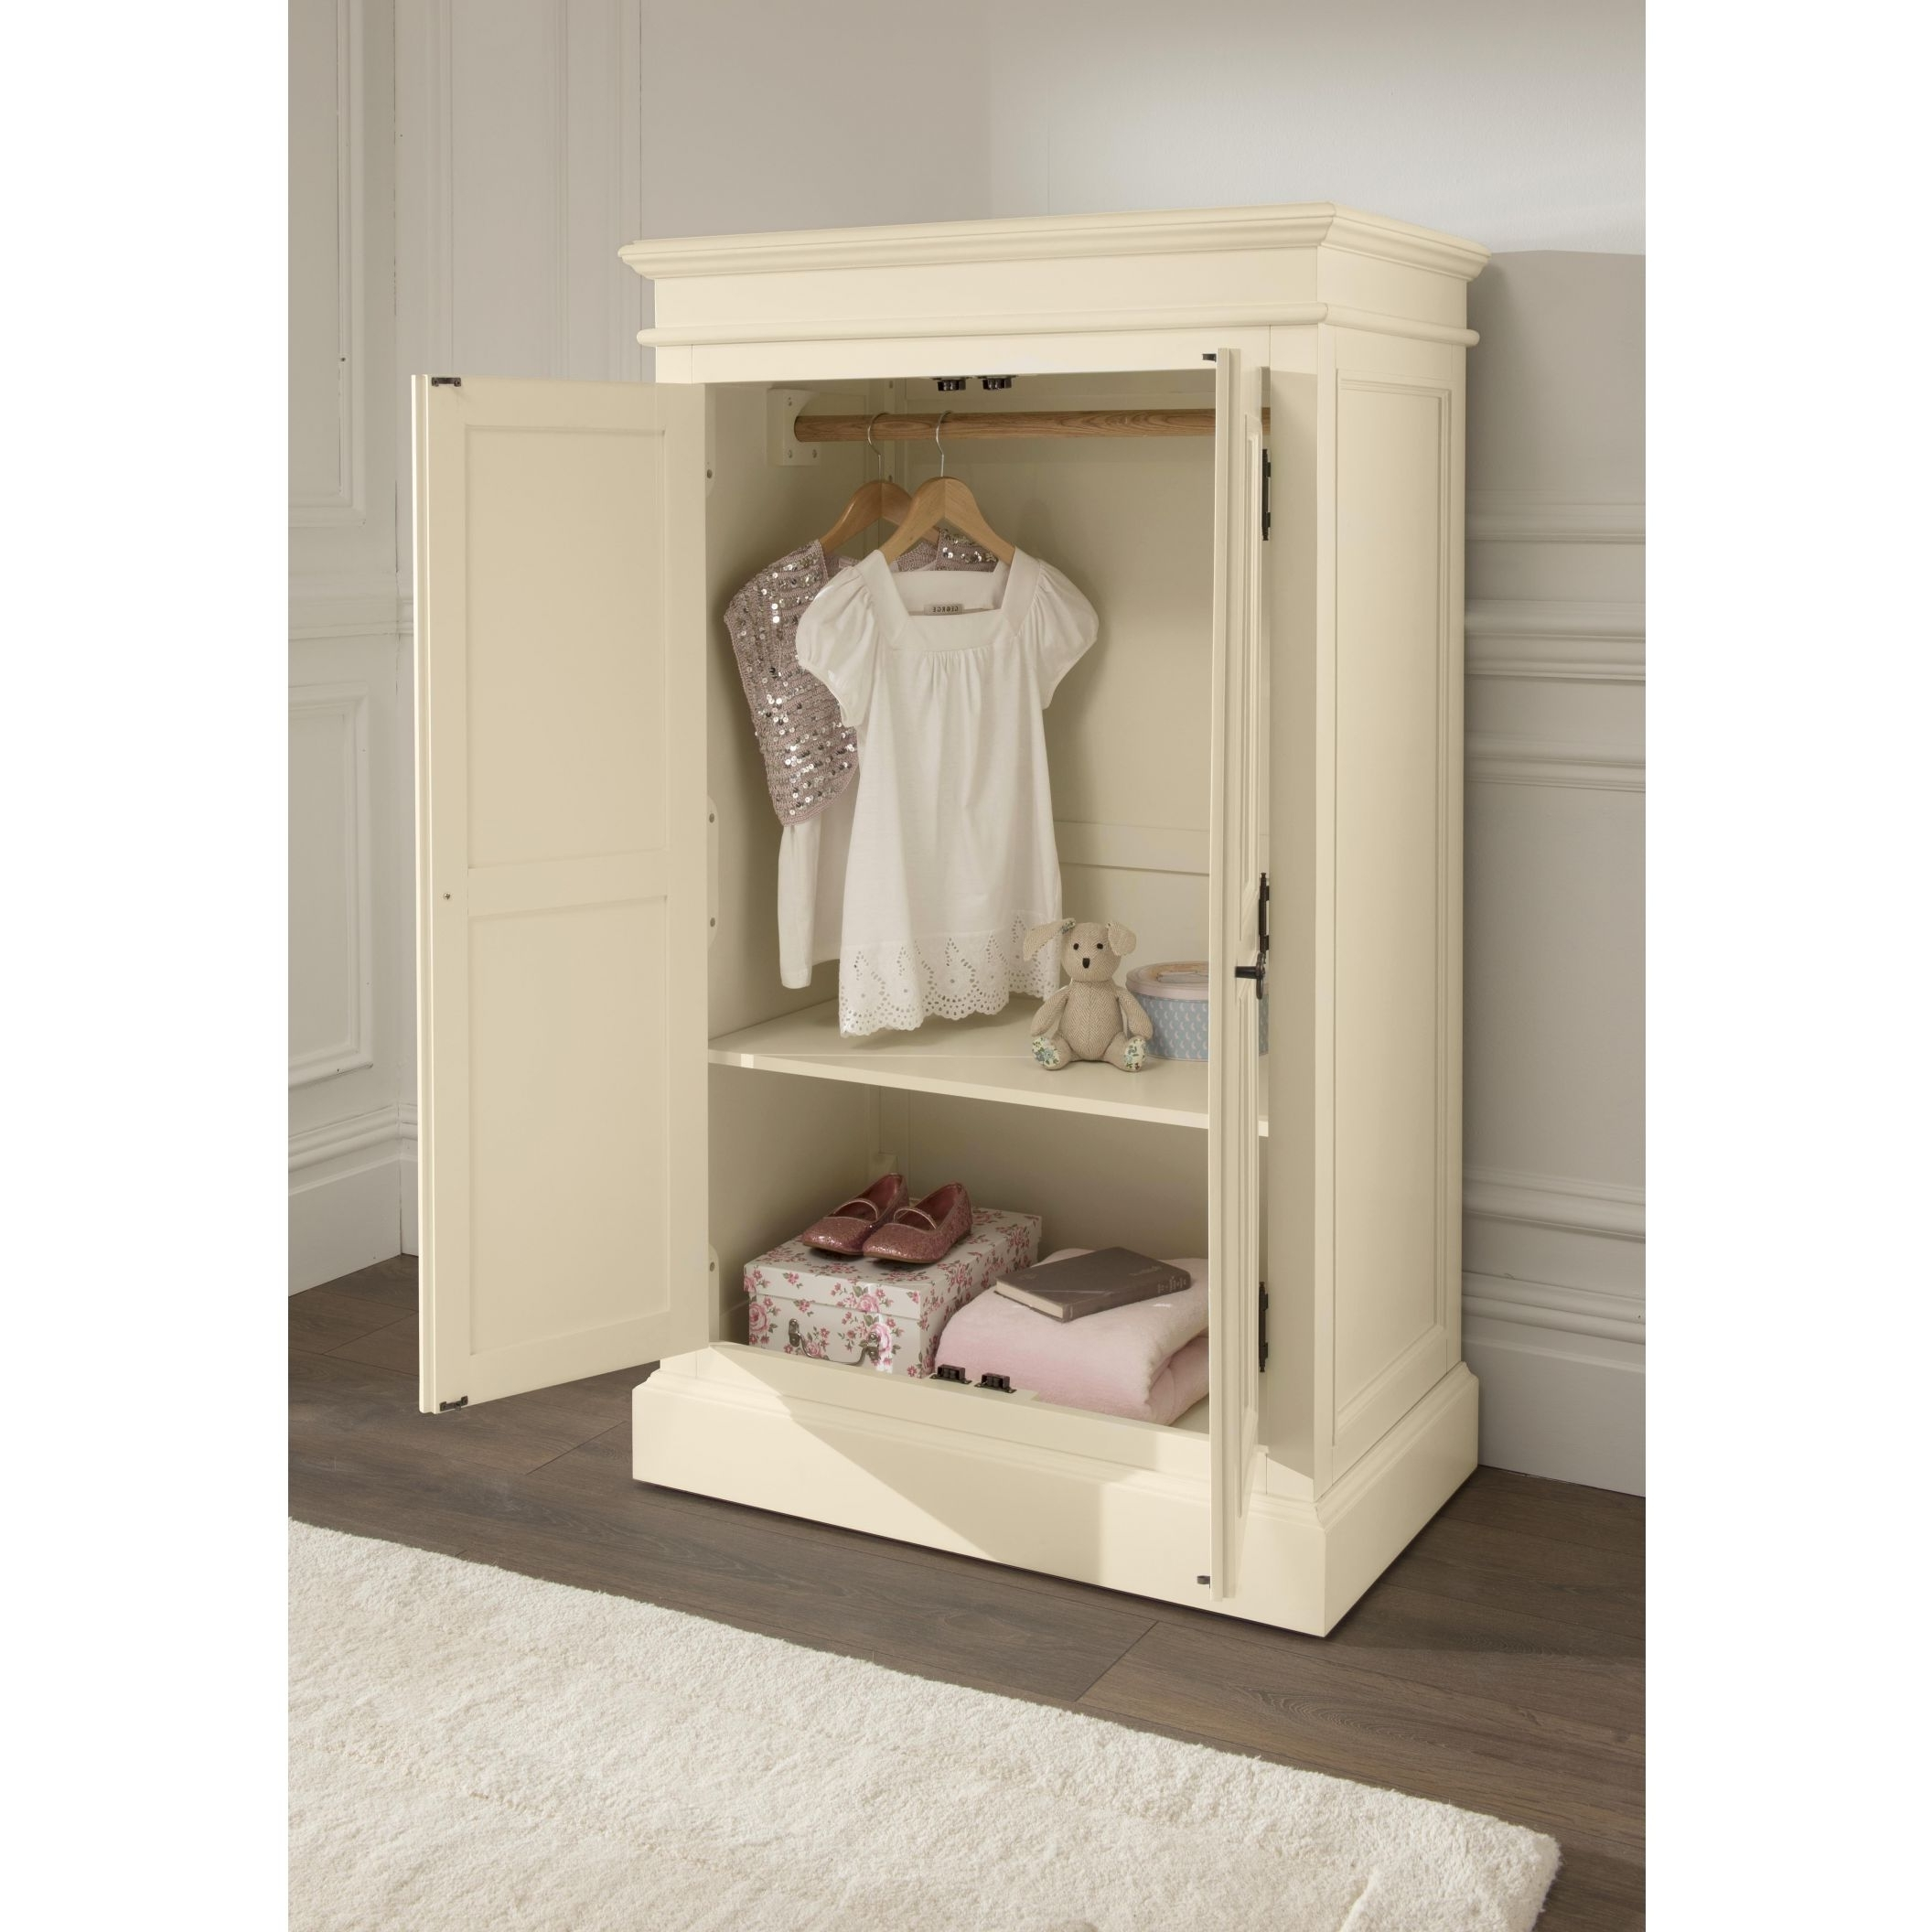 Chic Wardrobes For Well Known Shabby Chic Small Wardrobe (View 2 of 15)